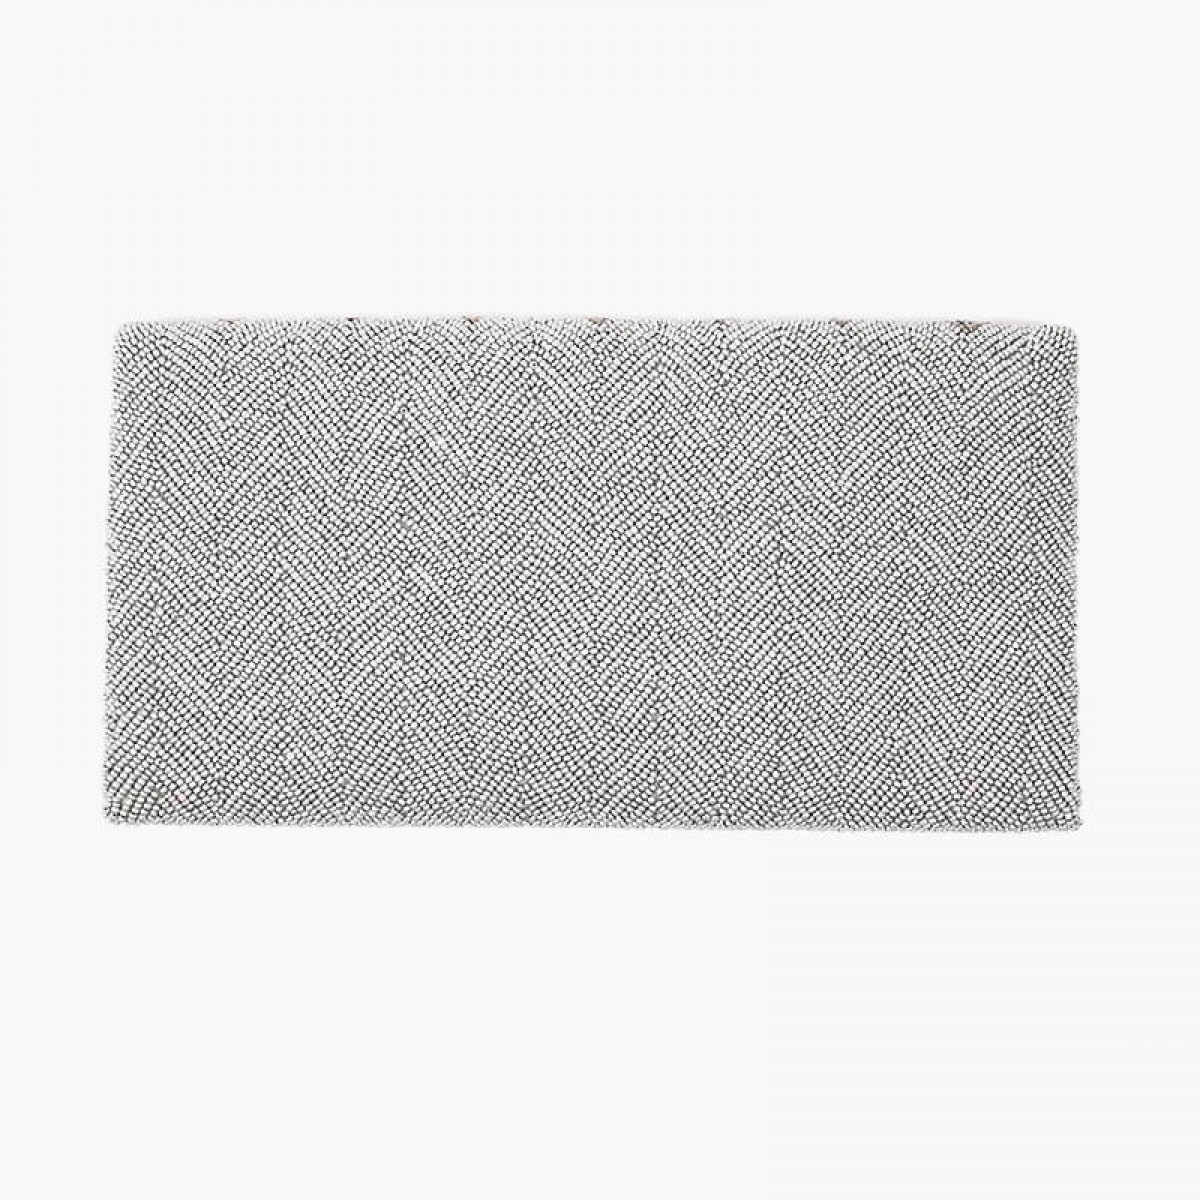 Beaded Evening Clutch Bag - Grey